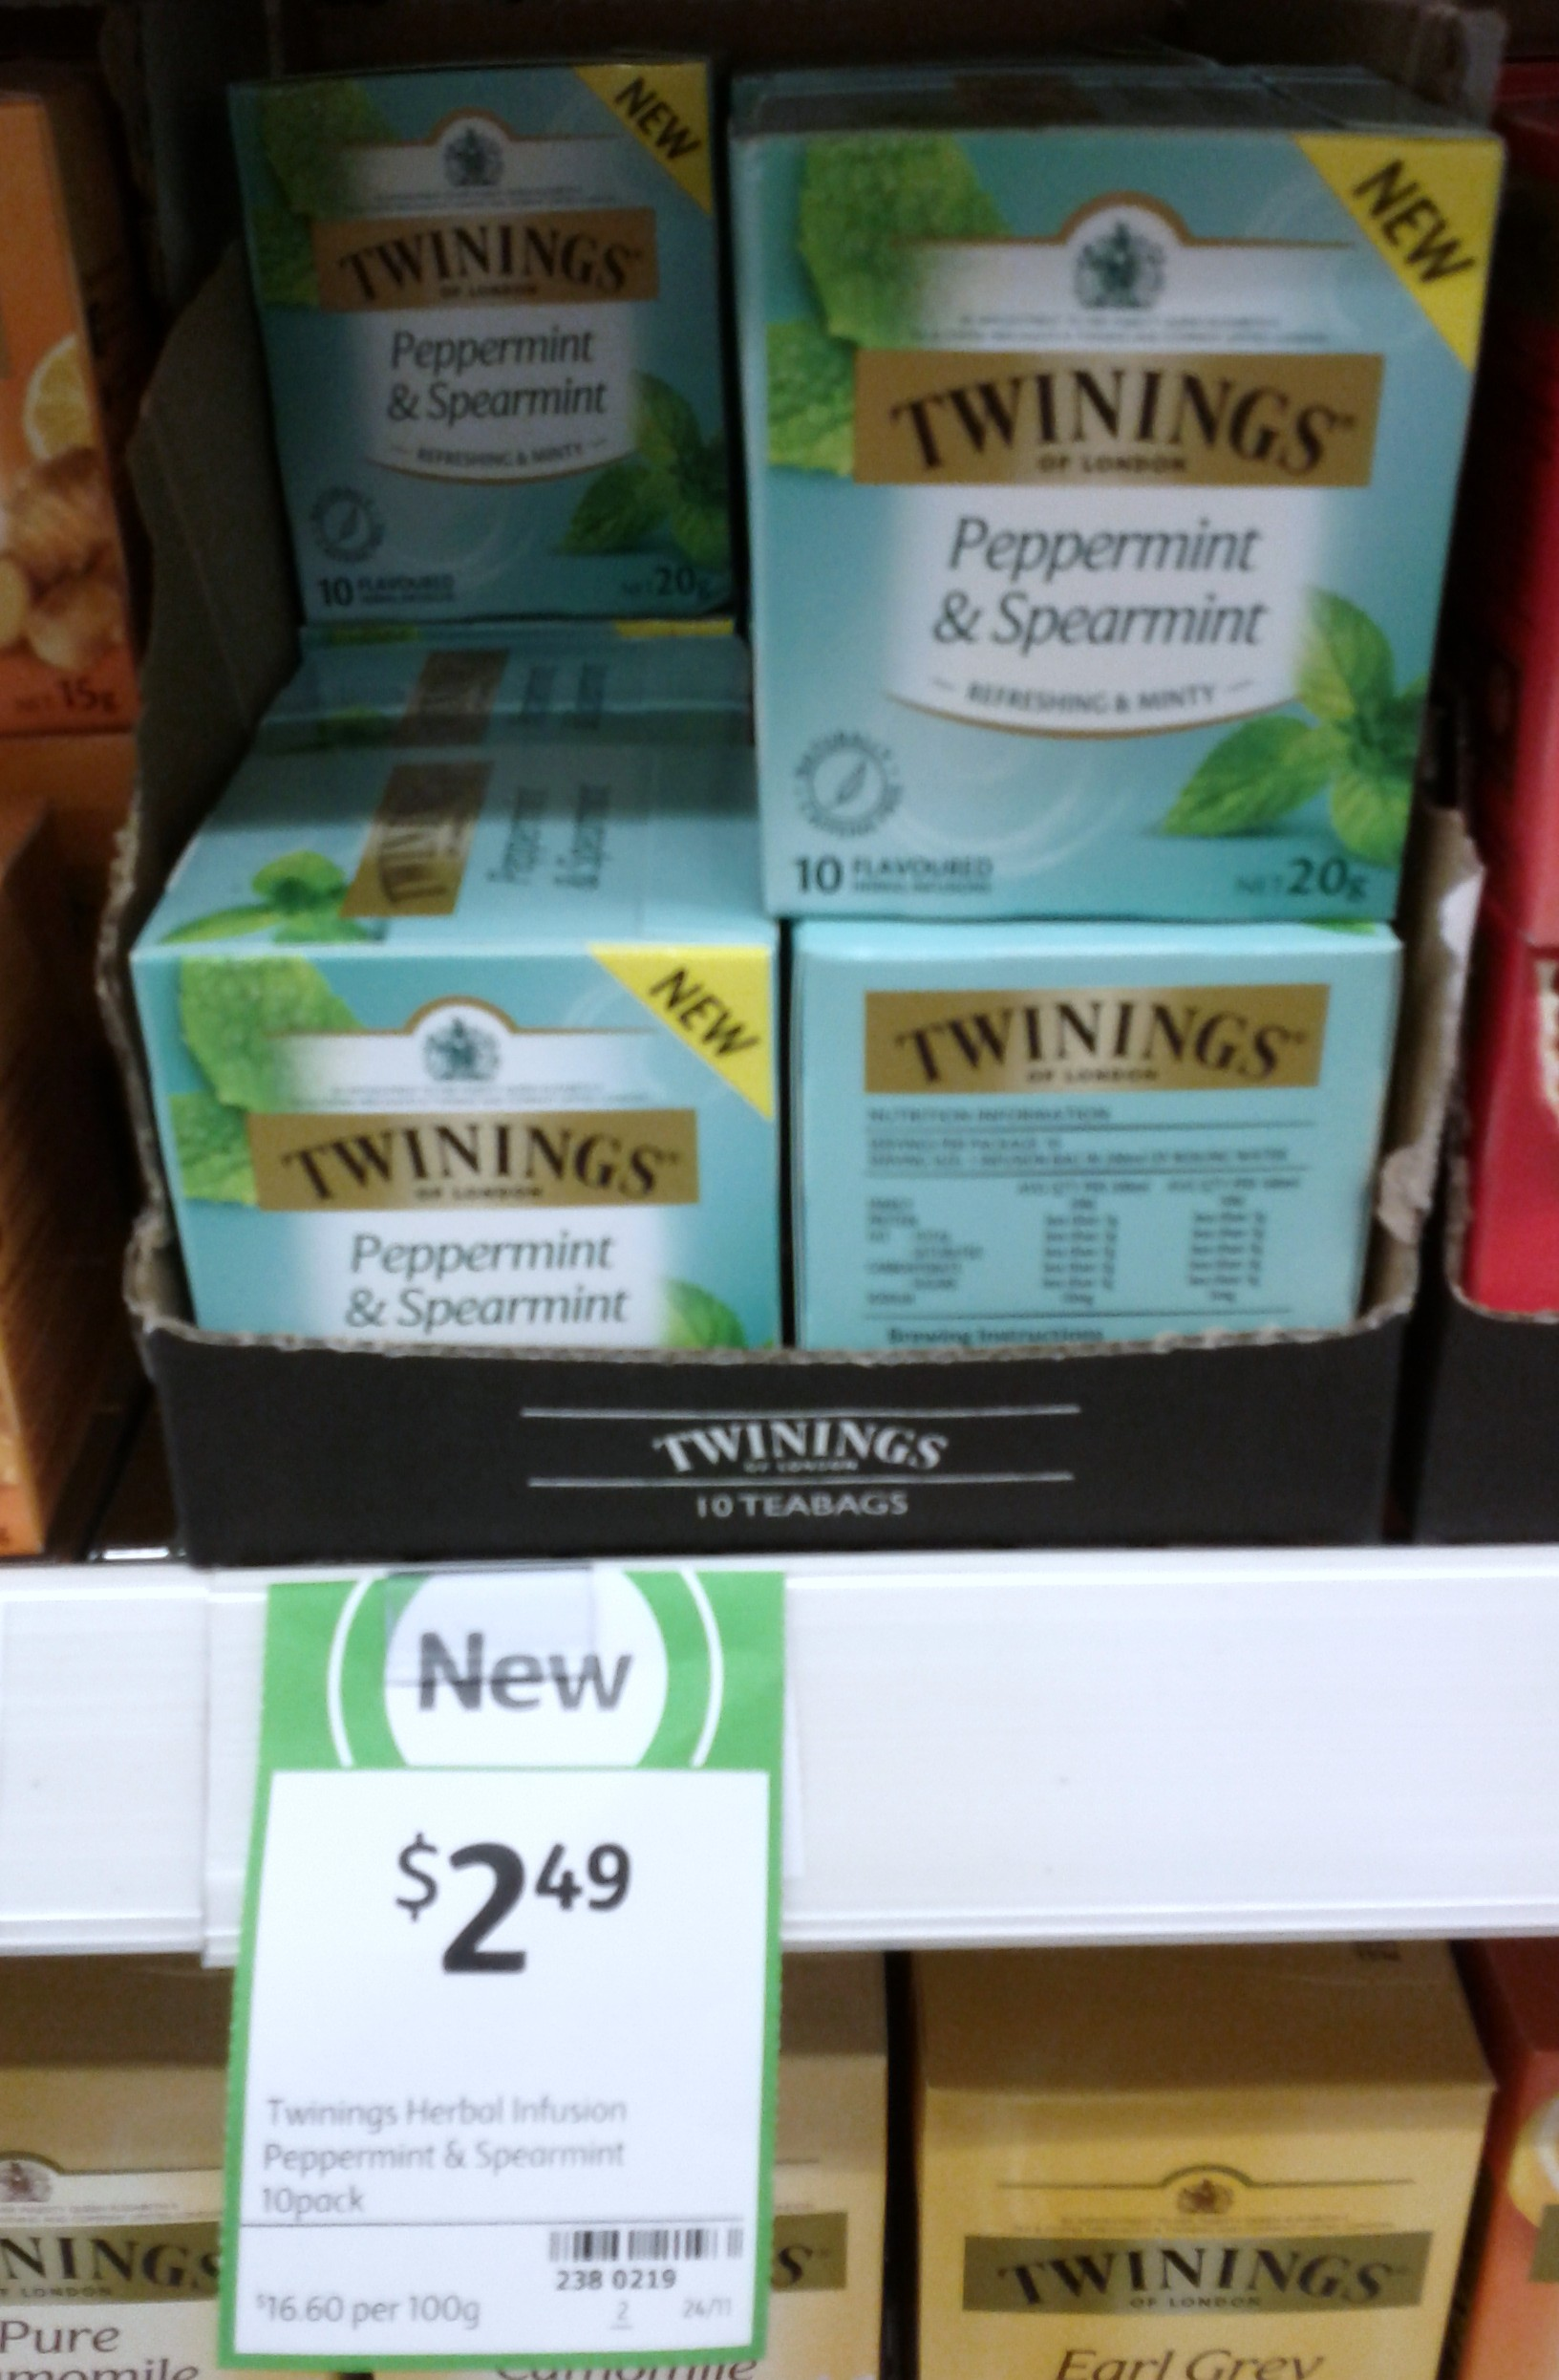 Twinings 20g Peppermint & Spearmint Tea